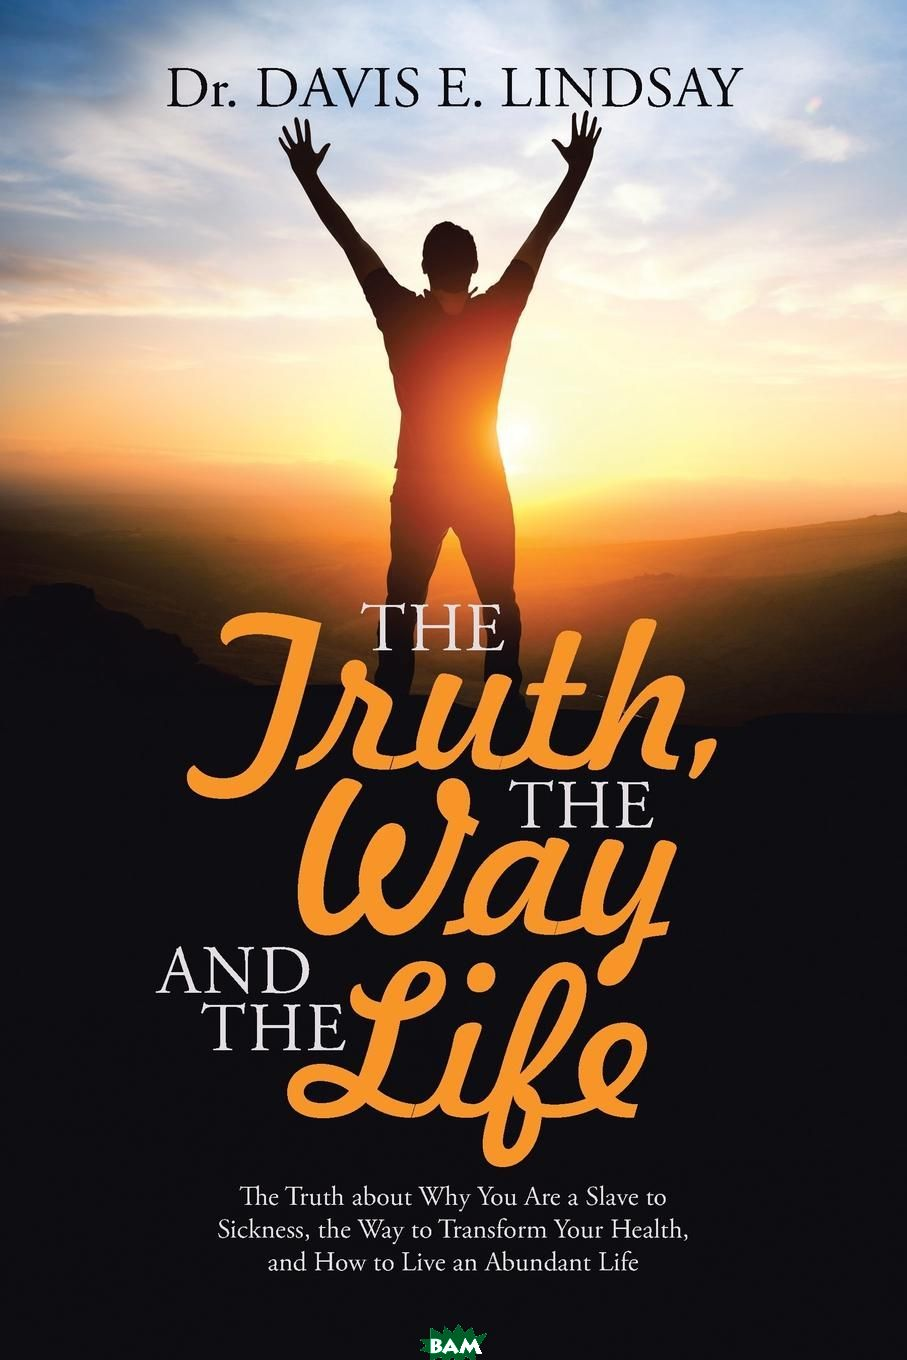 Купить The Truth, The Way and The Life. The Truth about Why You Are a Slave to Sickness, the Way to Transform Your Health, and How to Live an Abundant Life, Dr. Davis E. Lindsay, 9781512746983